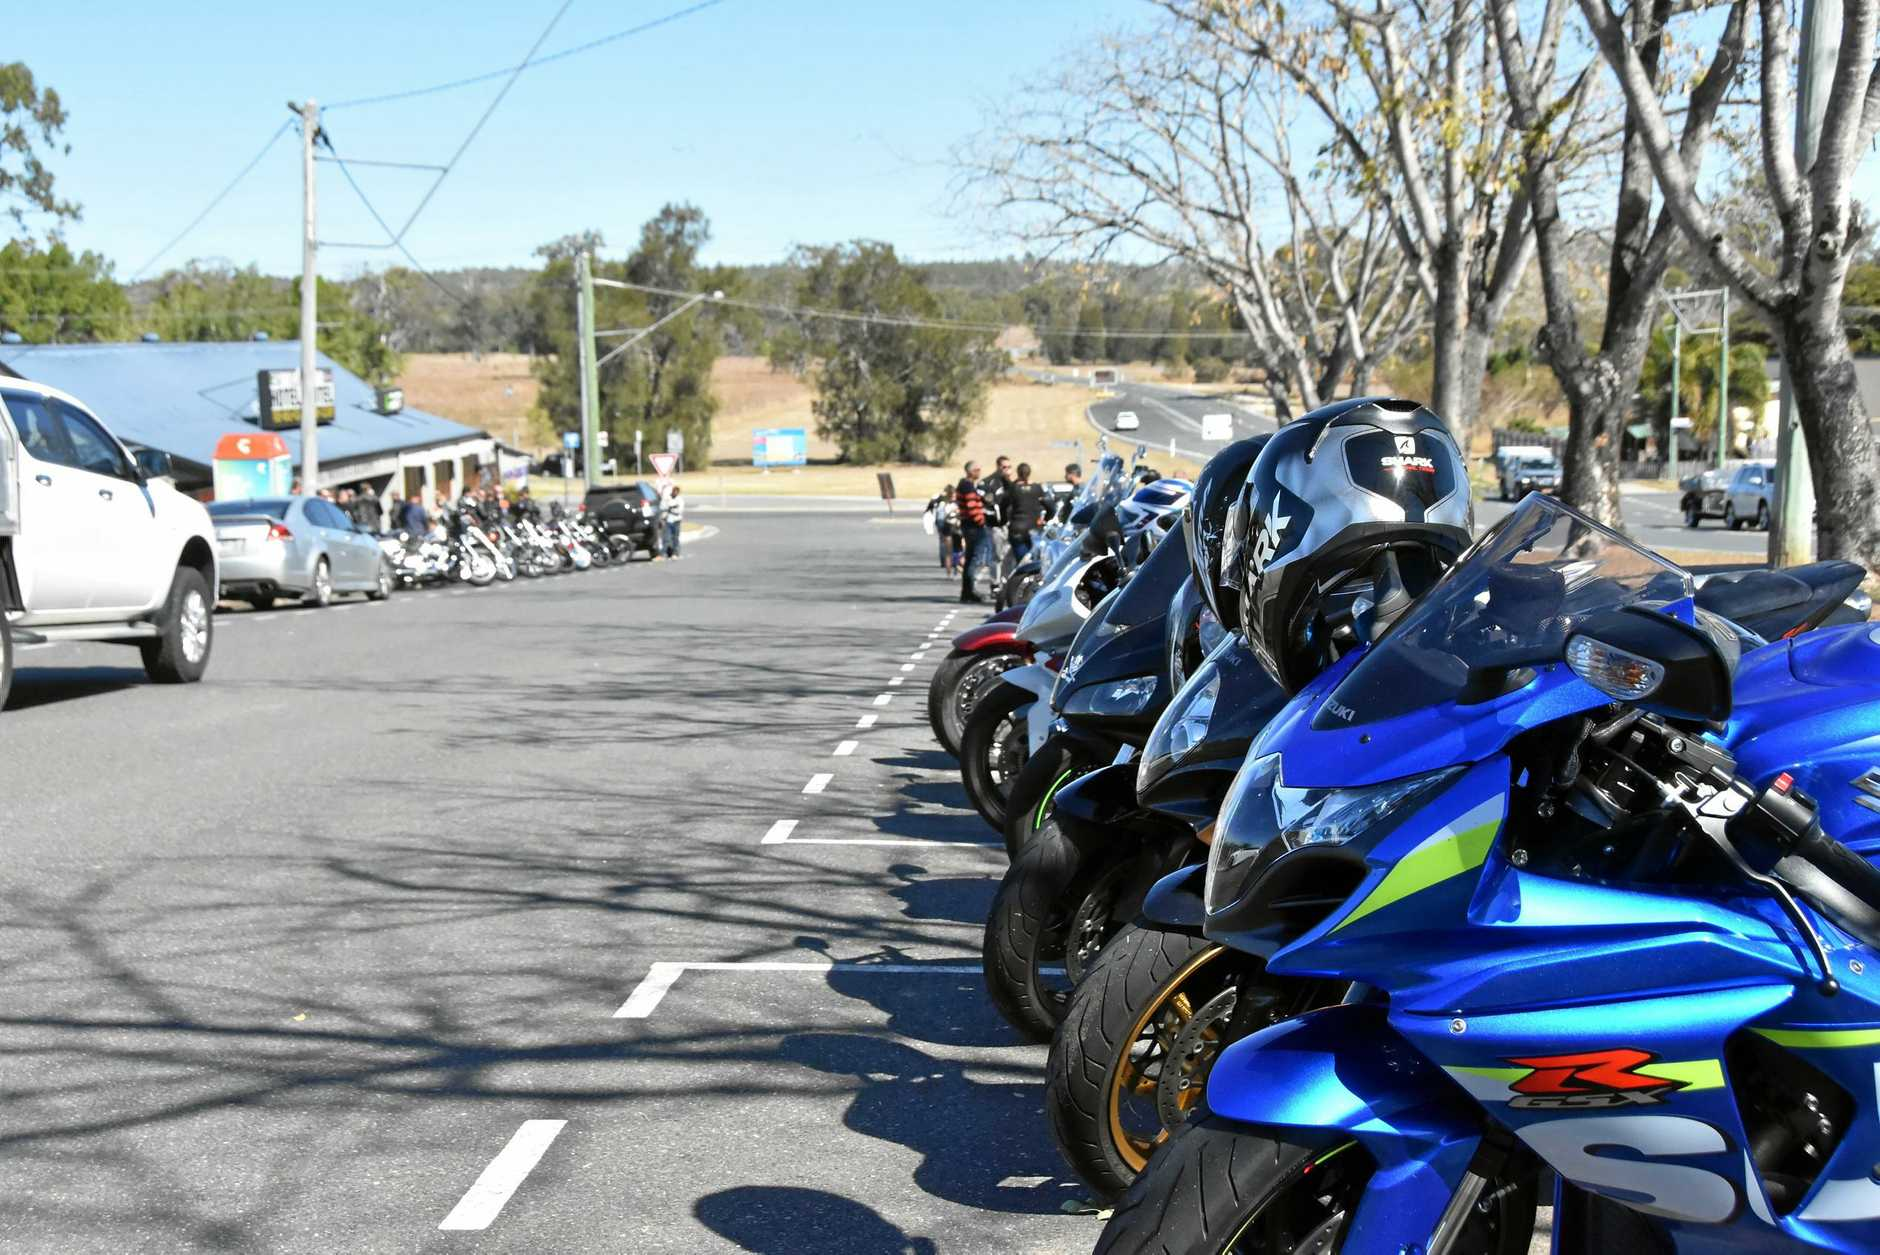 Motorbikes of all shapes and sizes came out to 'Ride for Bailey' around the Gladstone region on July 22 to support Bailey Stone's recovering from a car accident.